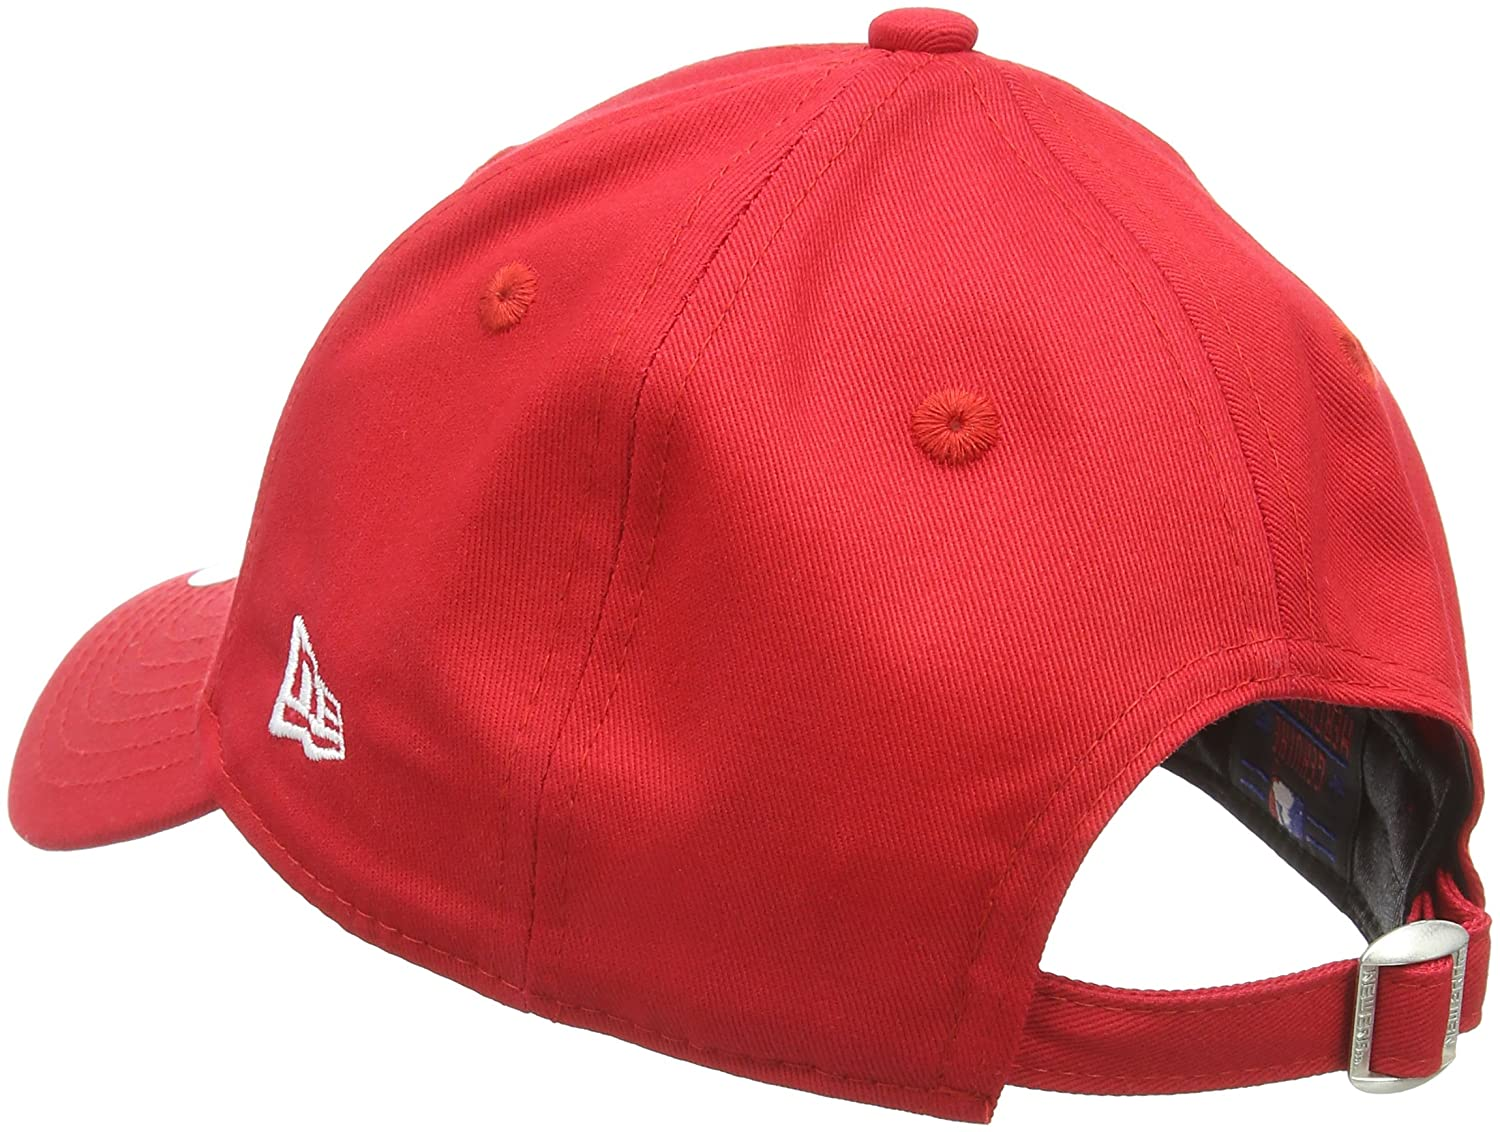 Kangol Flat Cap Sports Direct - Parchment N Lead 201da443217